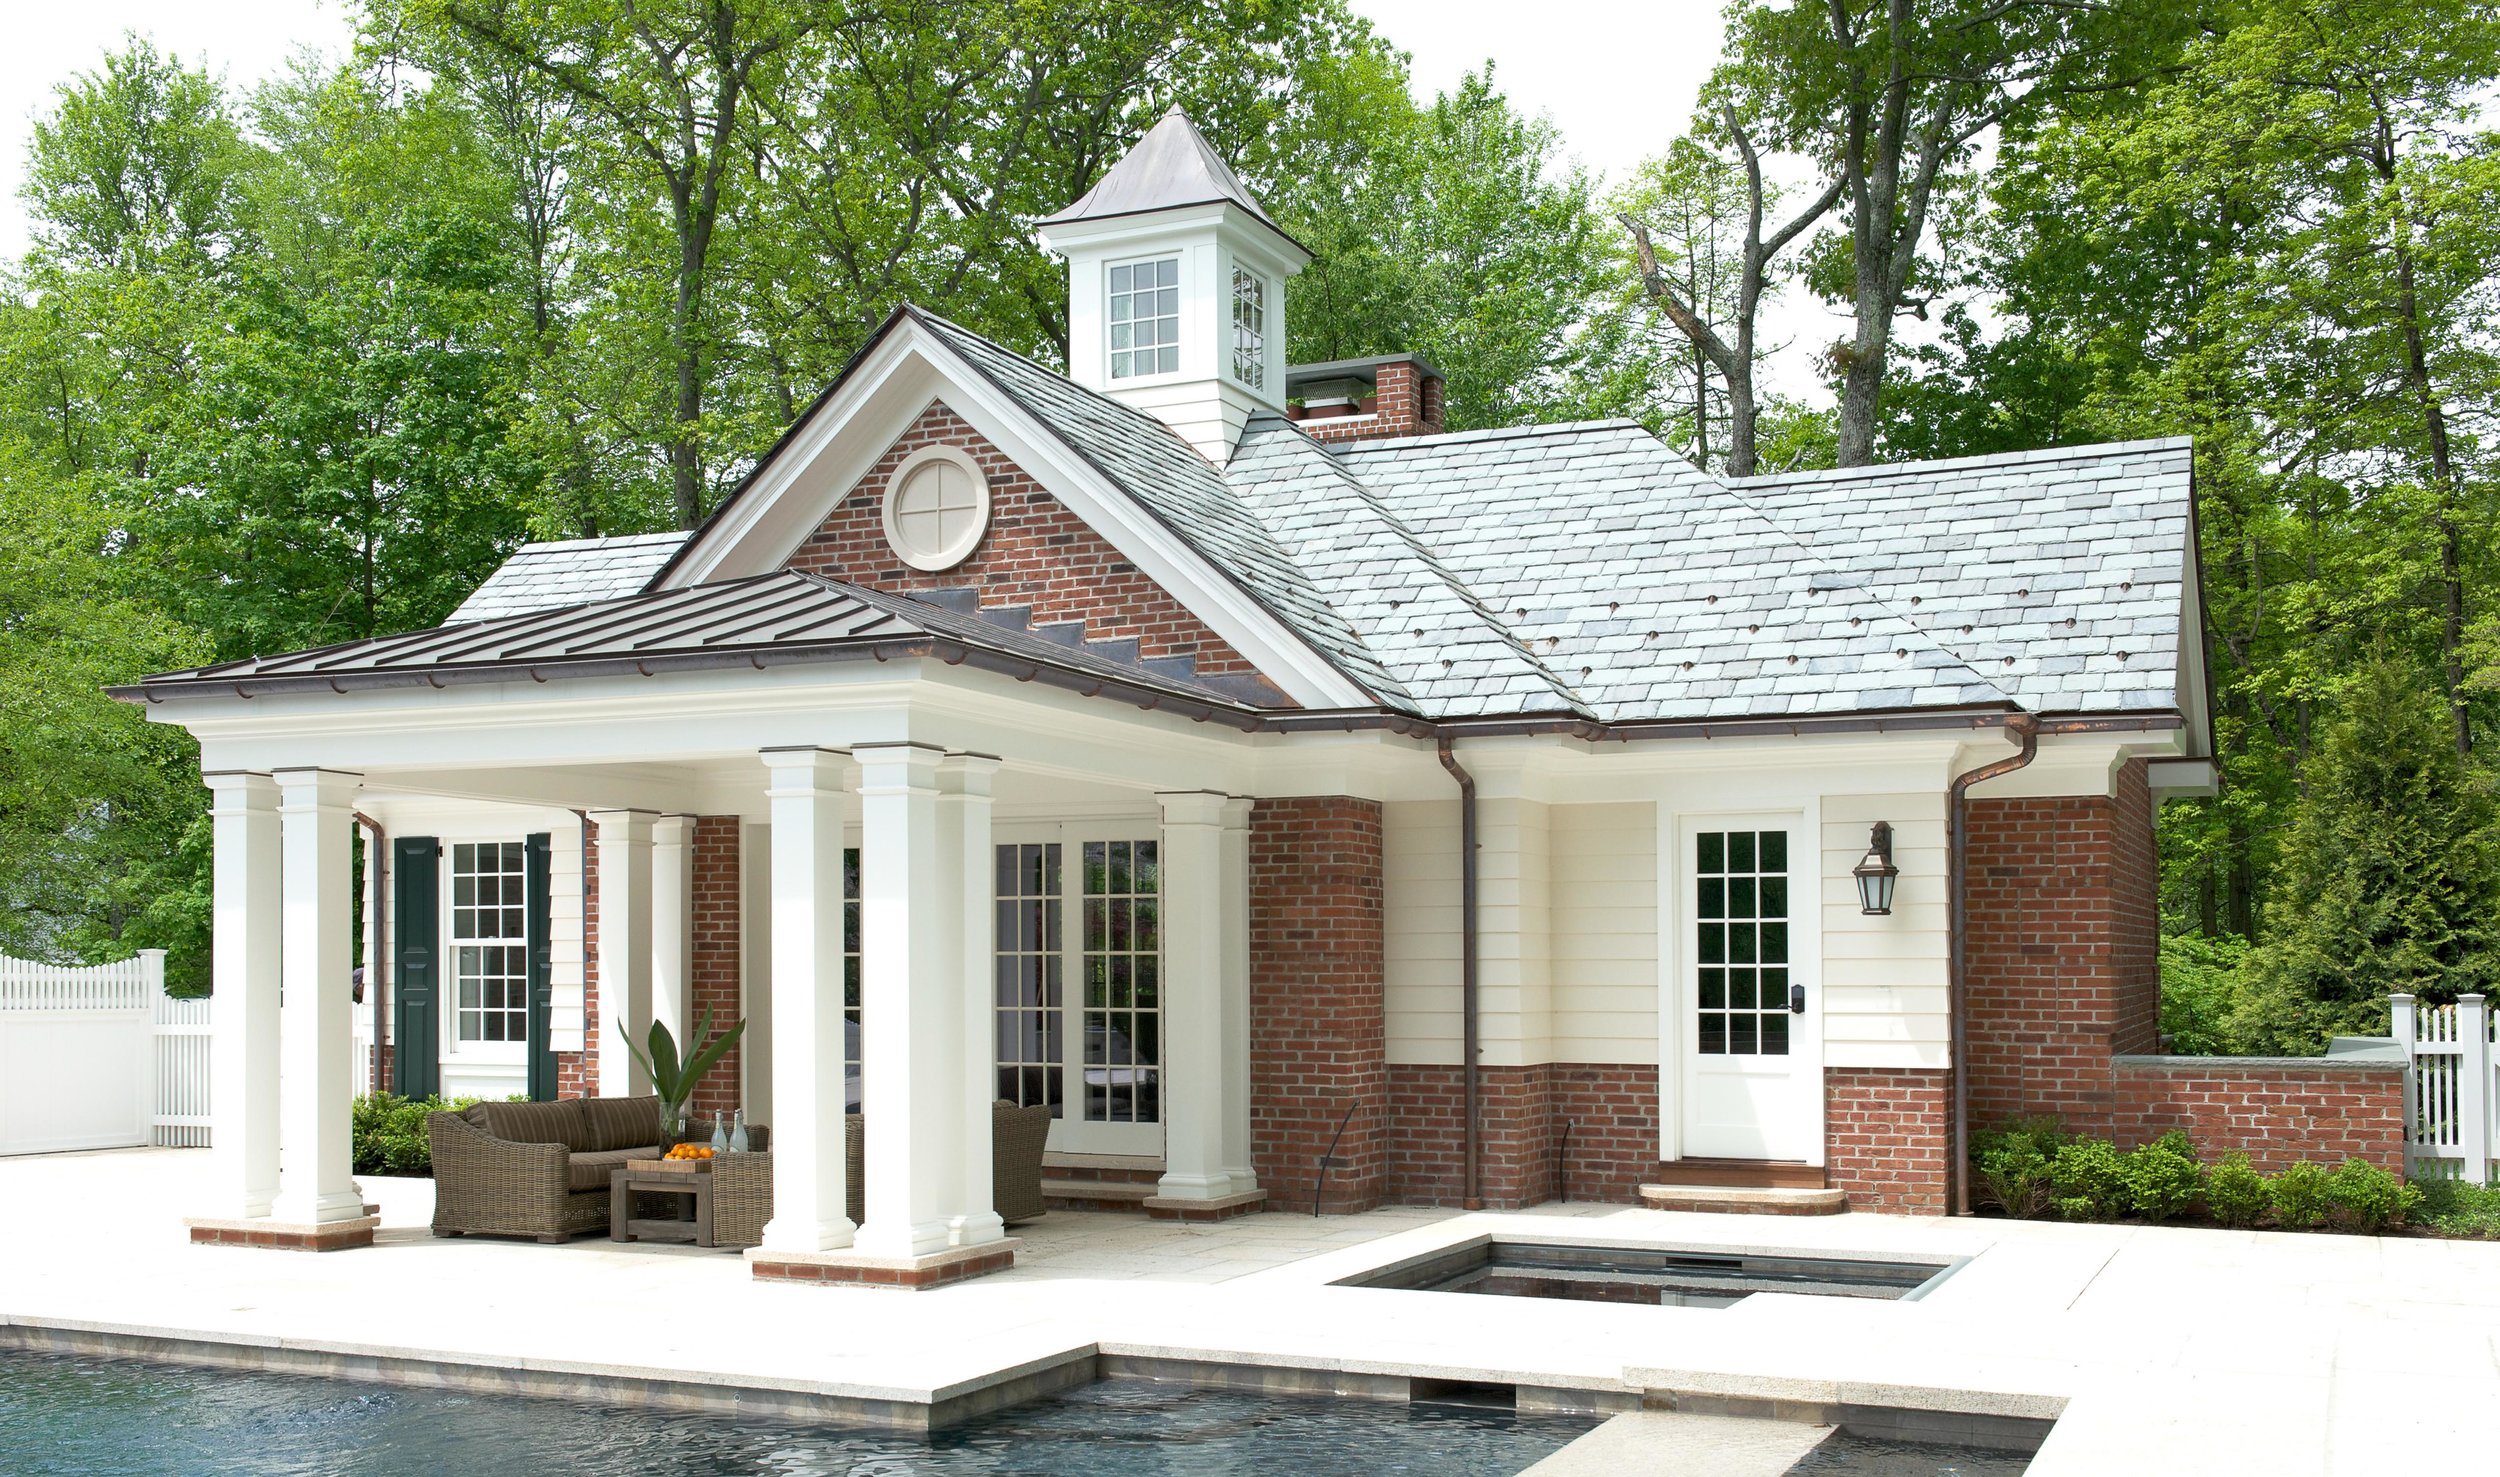 Brick pool house with slate and copper roof